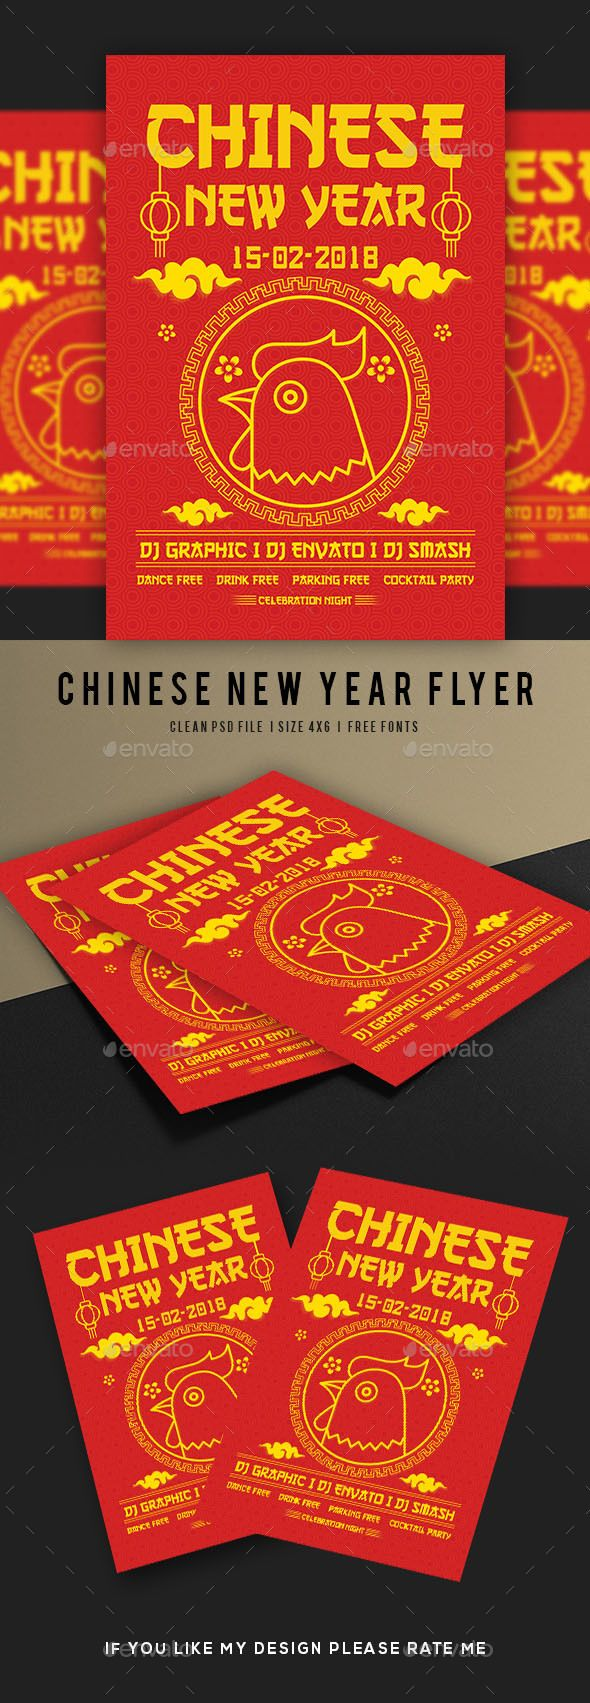 #Chinese #New #Year Flyer - Flyers Print Templates